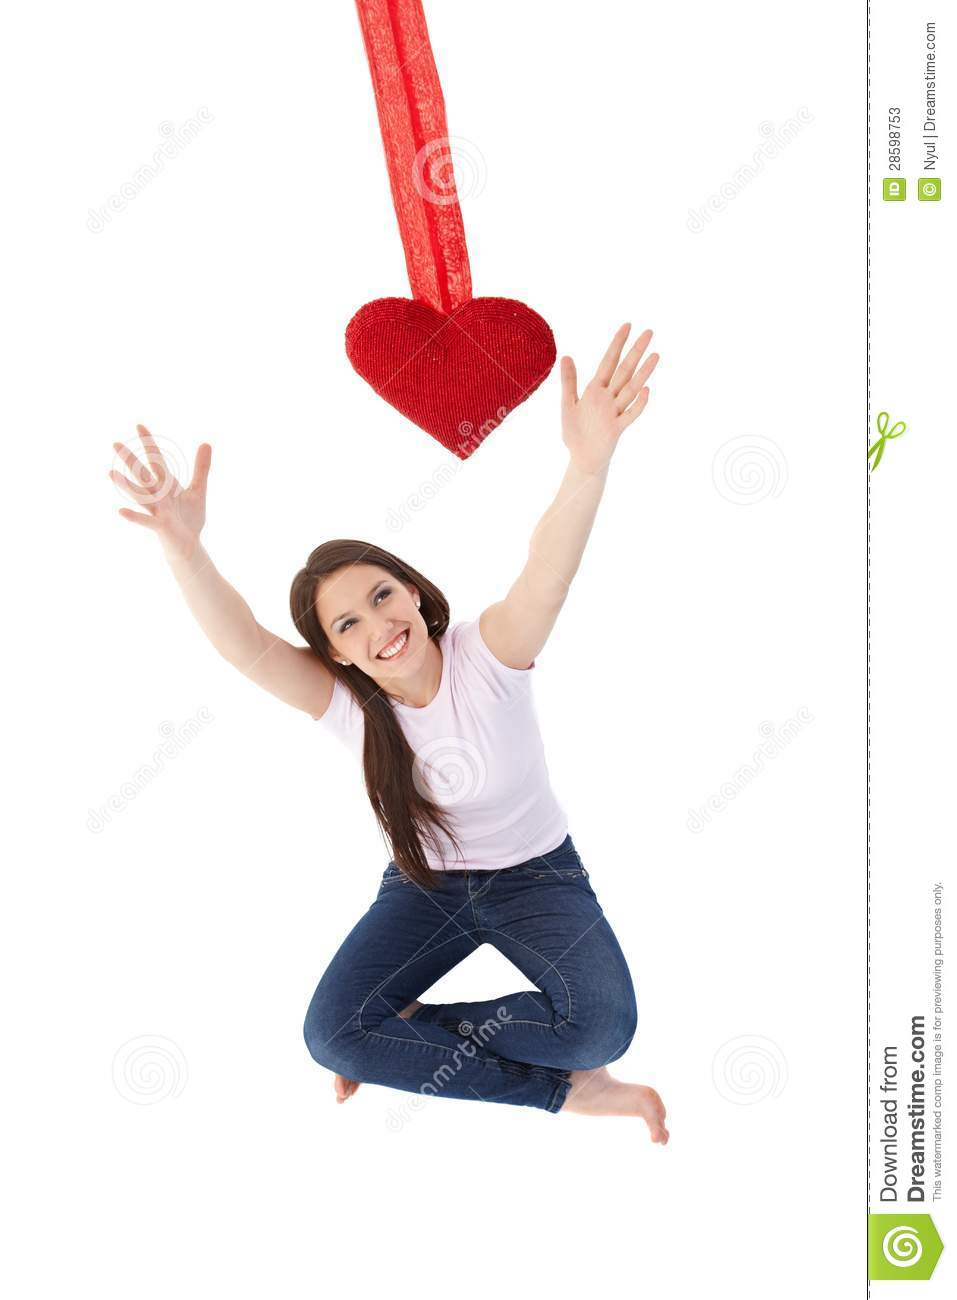 young woman reaching out for red heart smiling stock